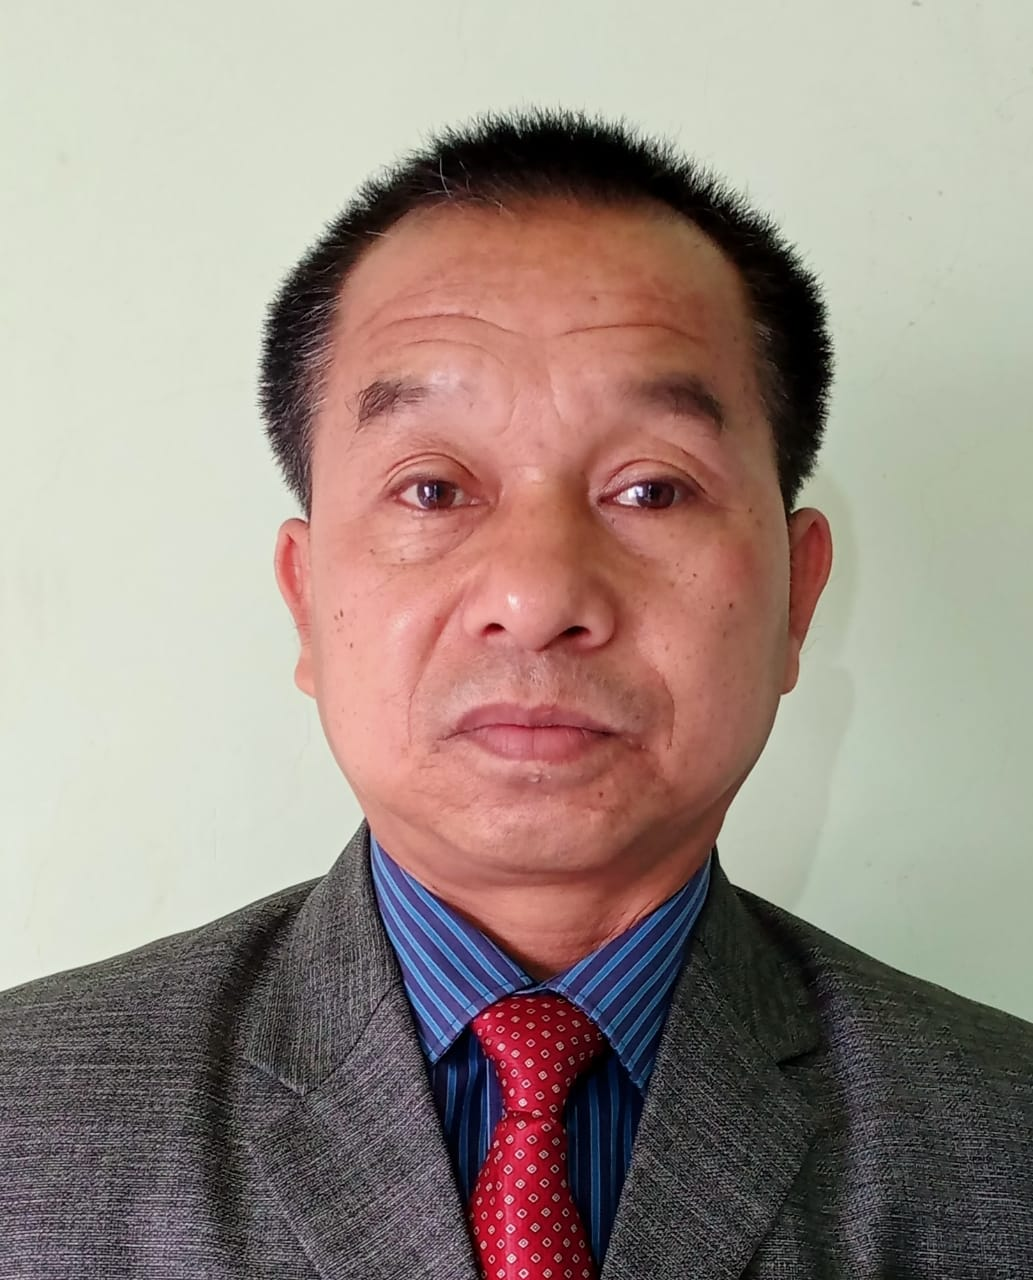 Rev. Lalkhamlien, Executive Director